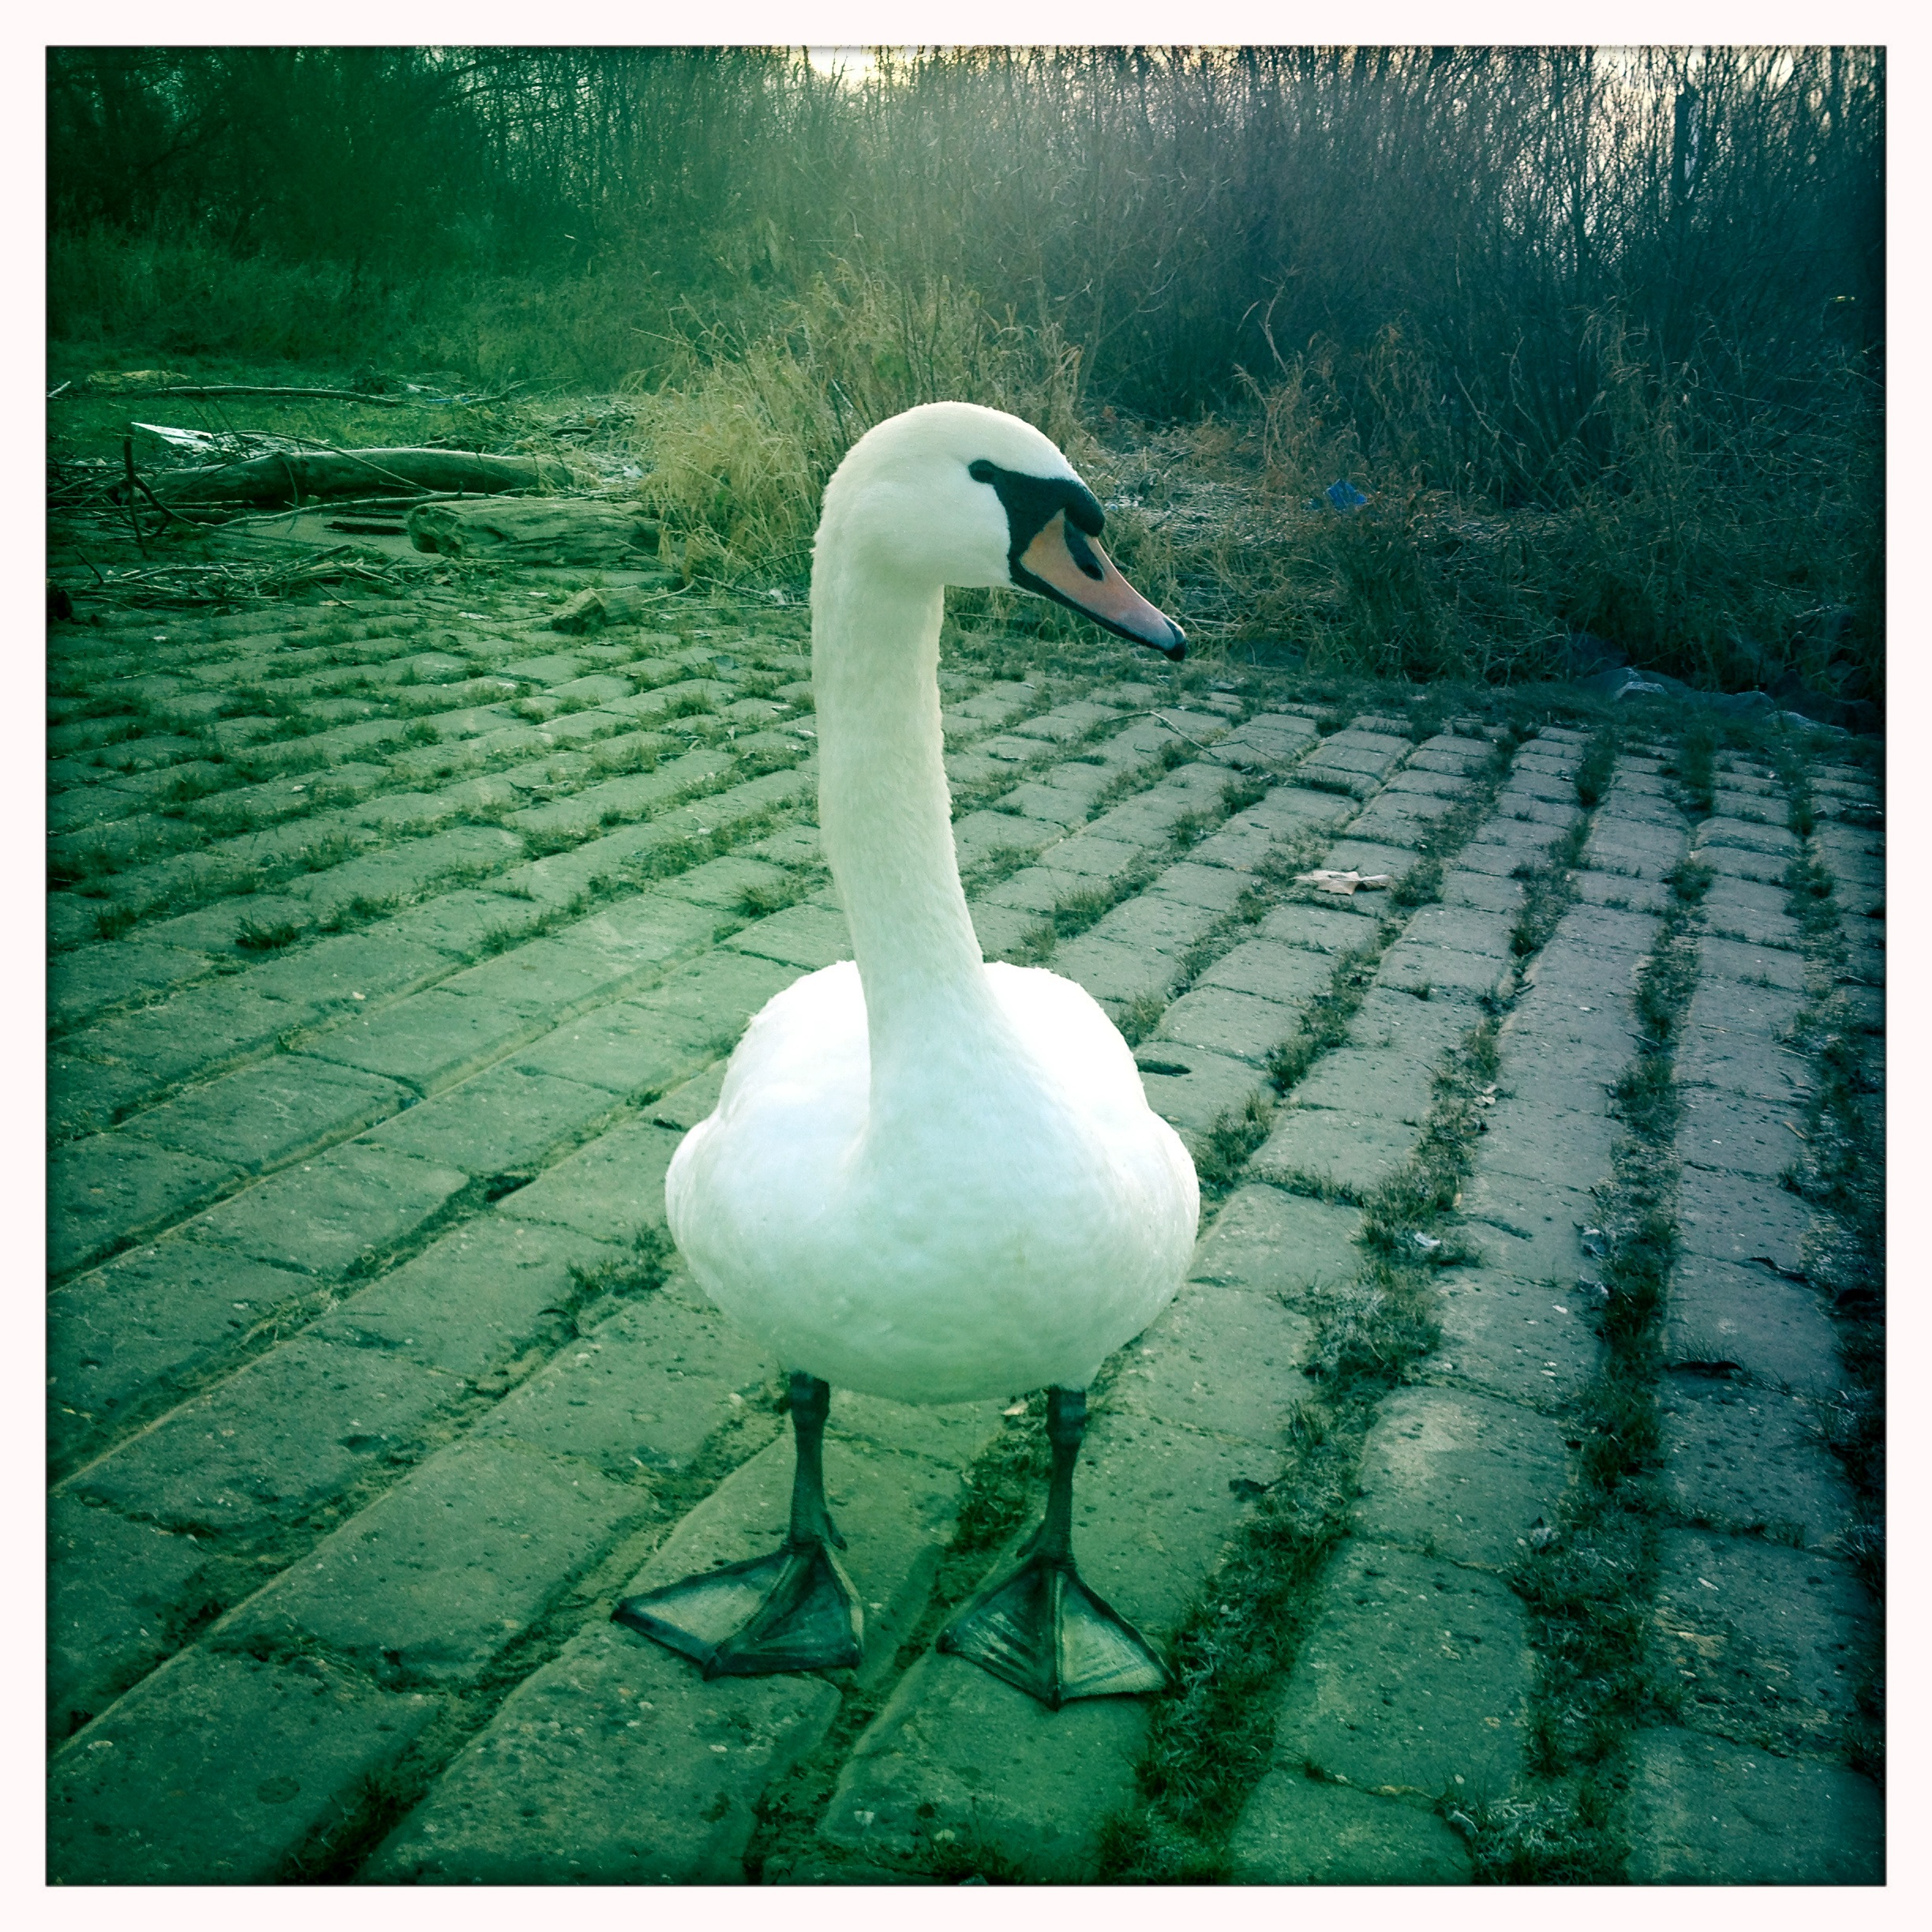 Schwan an der Natostraße in Lampertheim #Hipstamatic #JohnS #Blanko